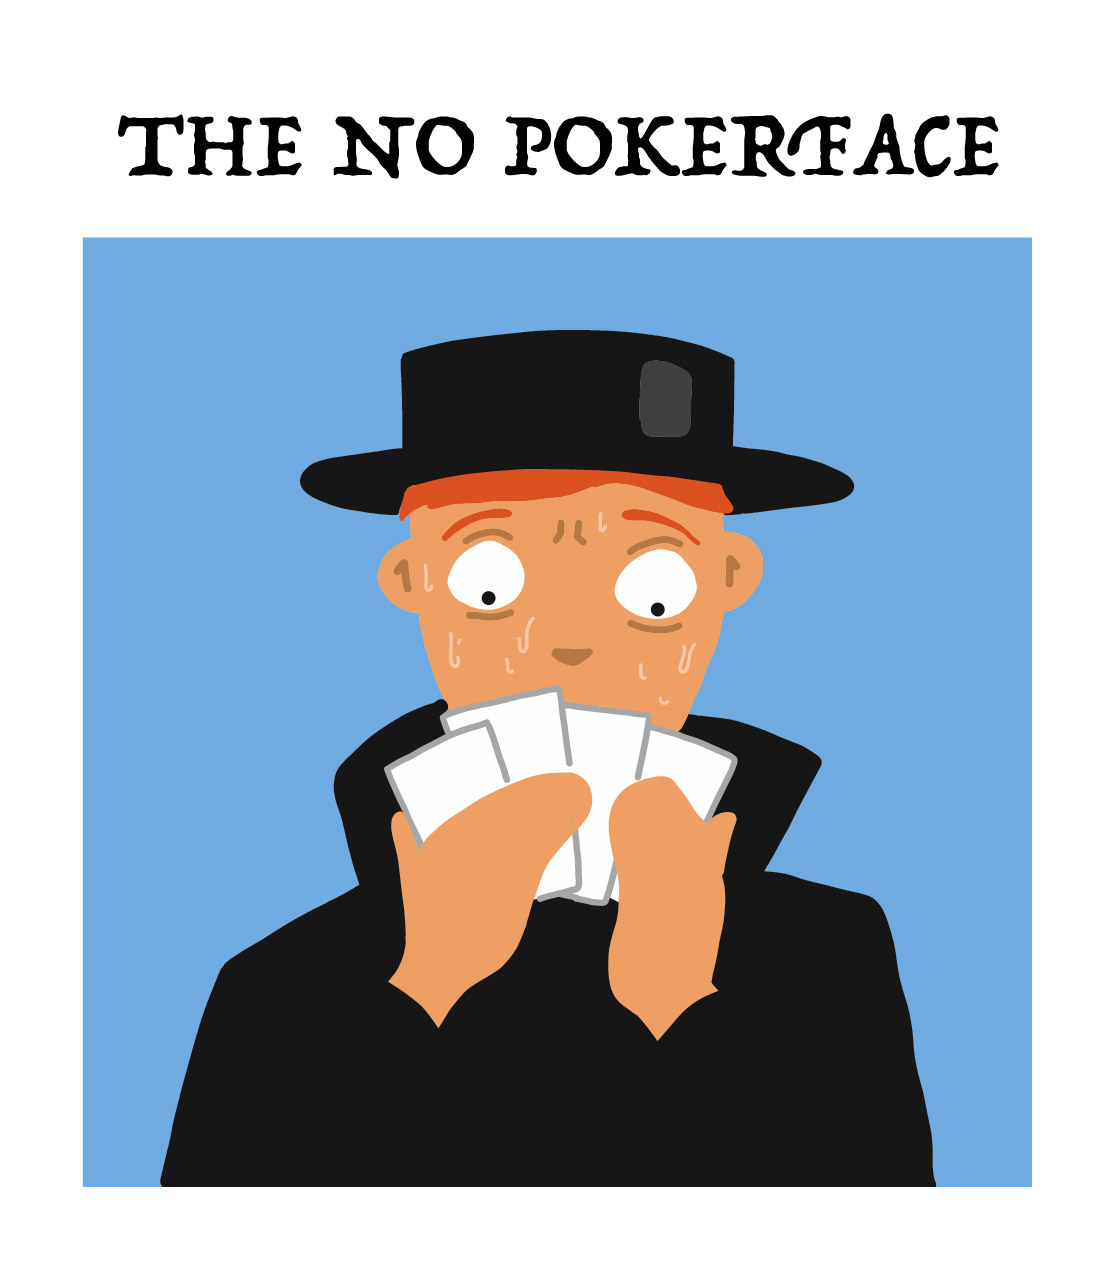 the no pokerface, type of board game player